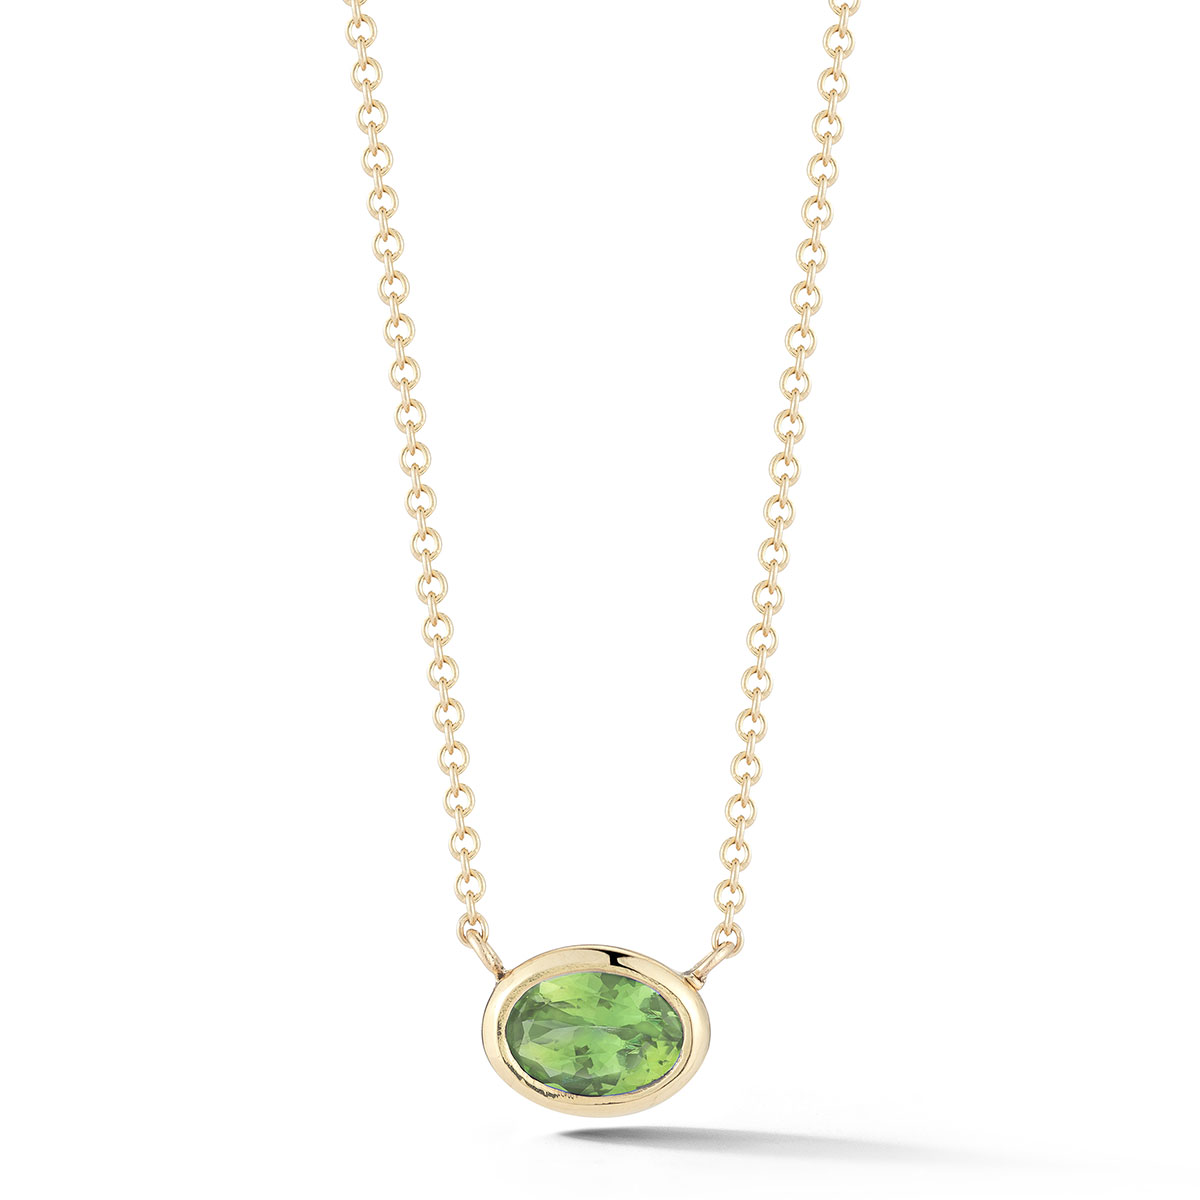 NP0184 Oval Bezel Set Pendants